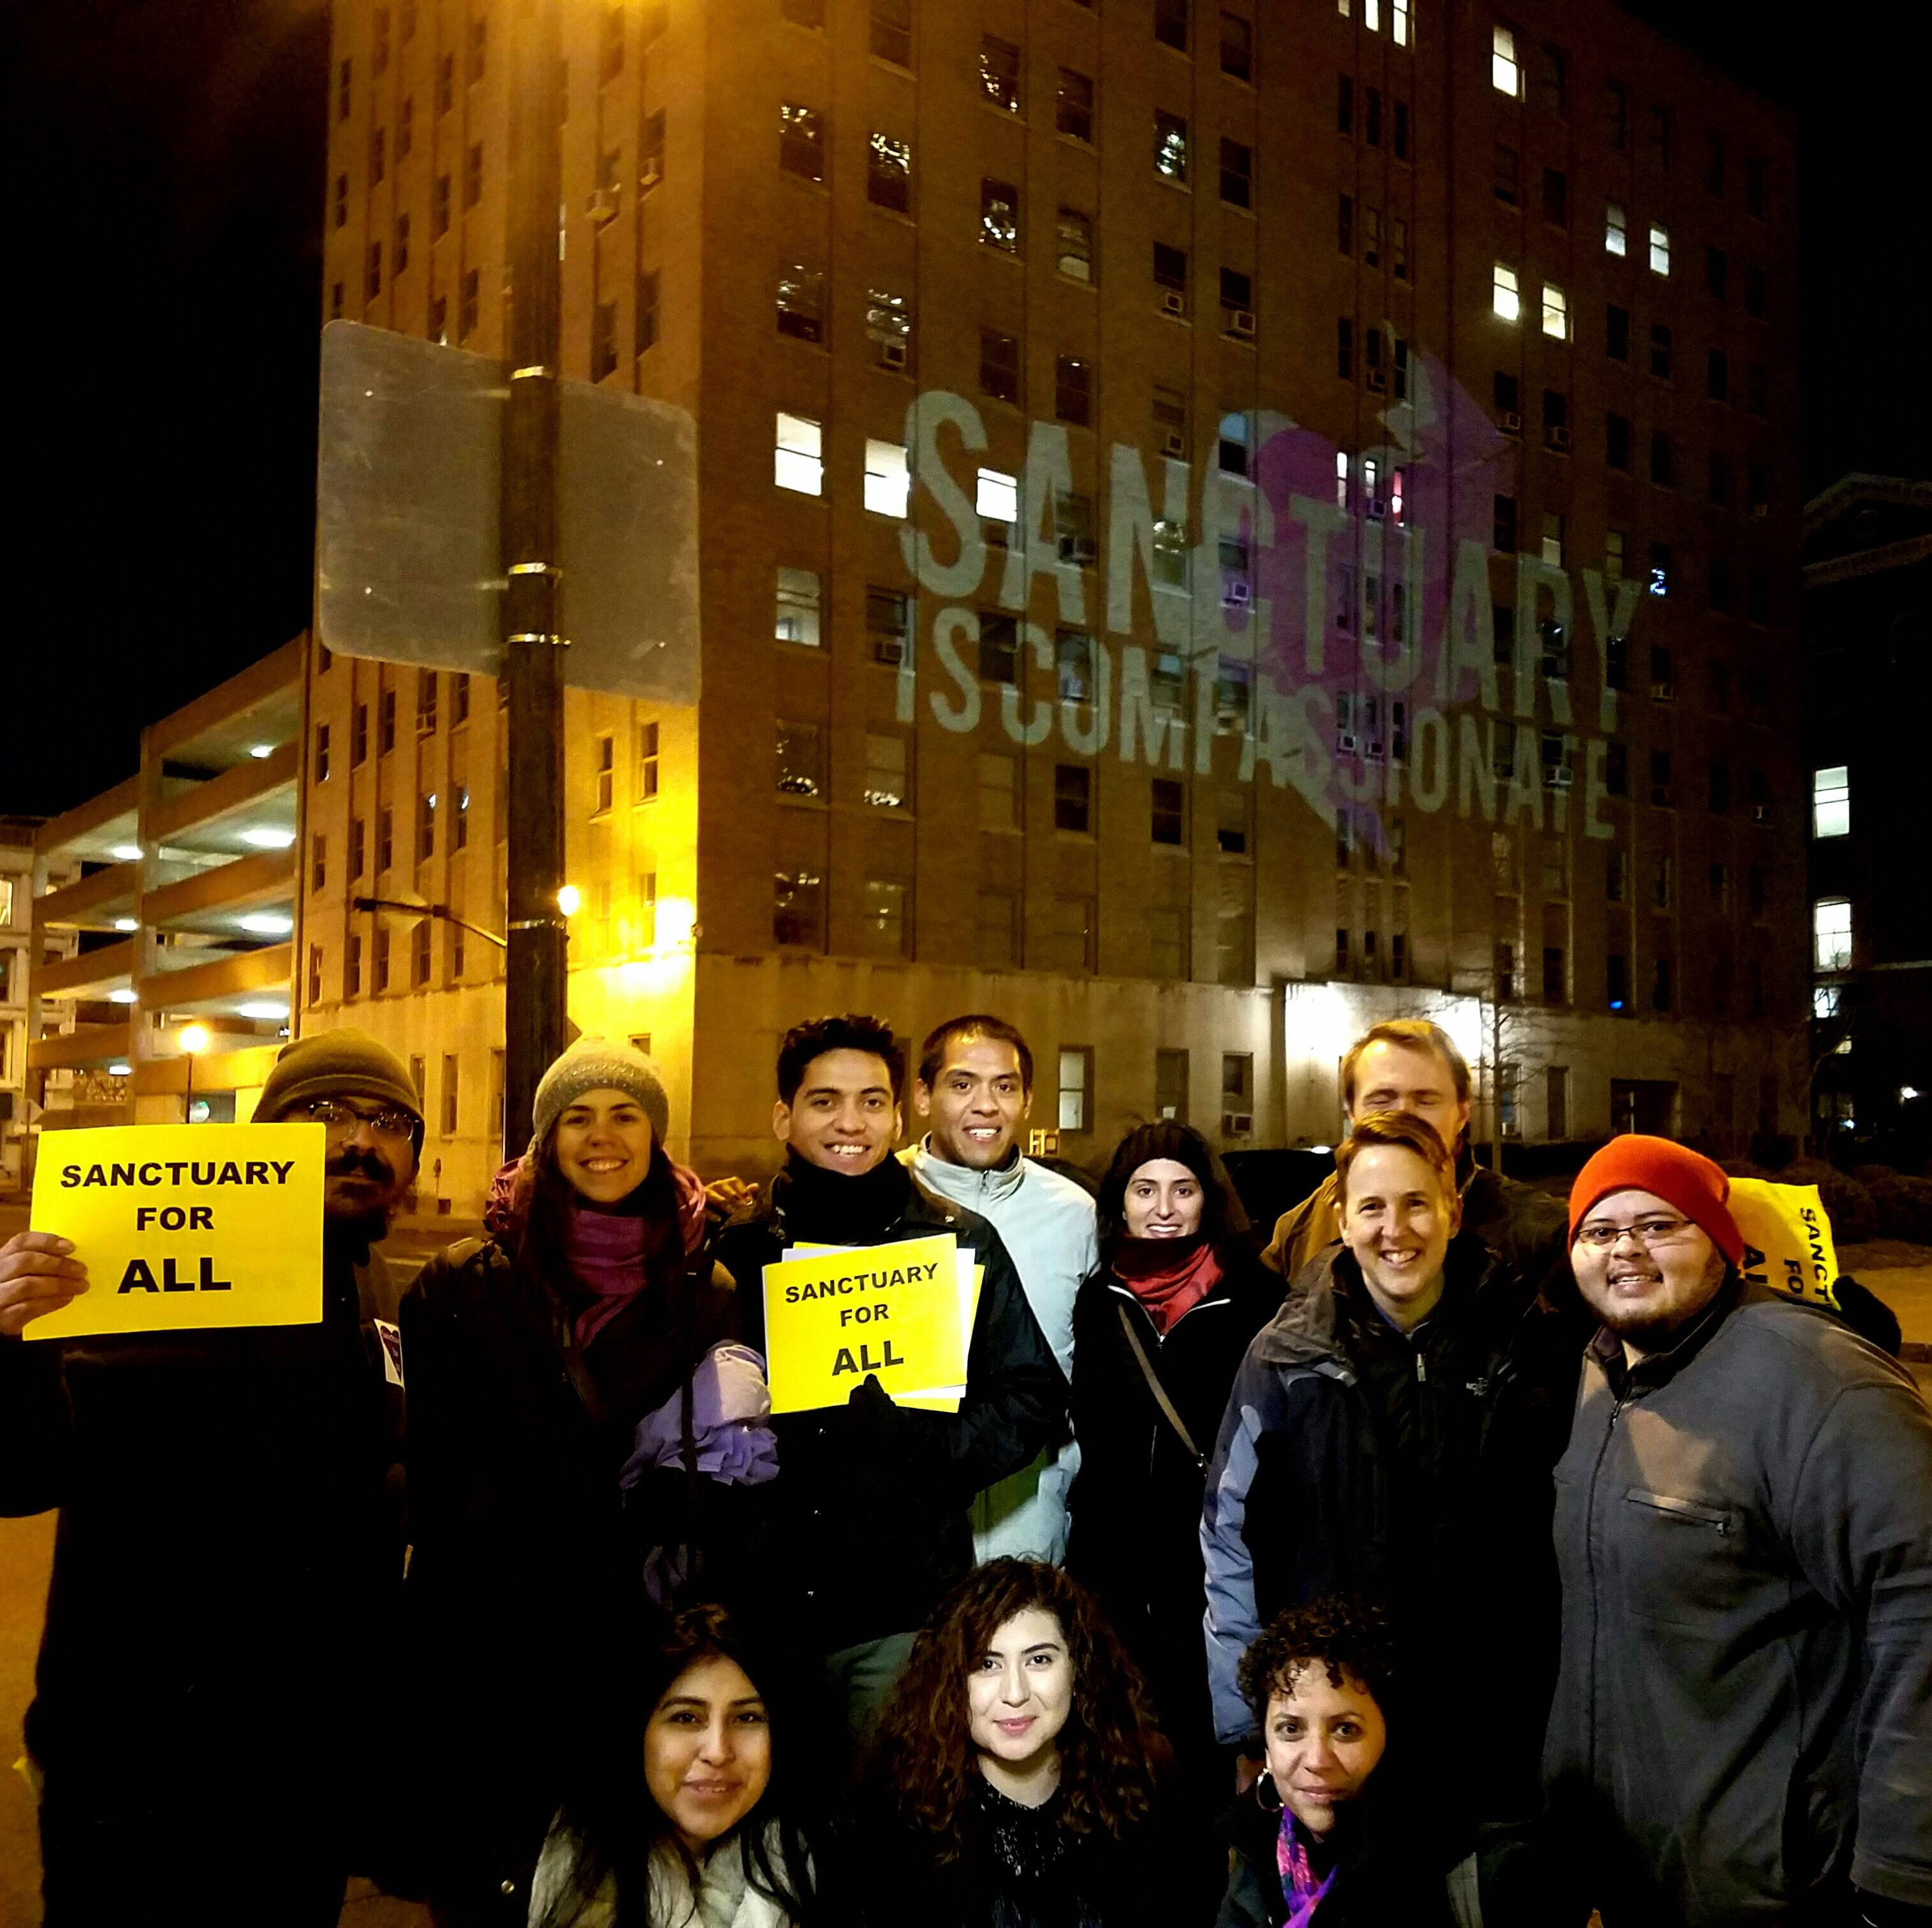 mijente crew in louisville, ky push forward sanctuary ordinance